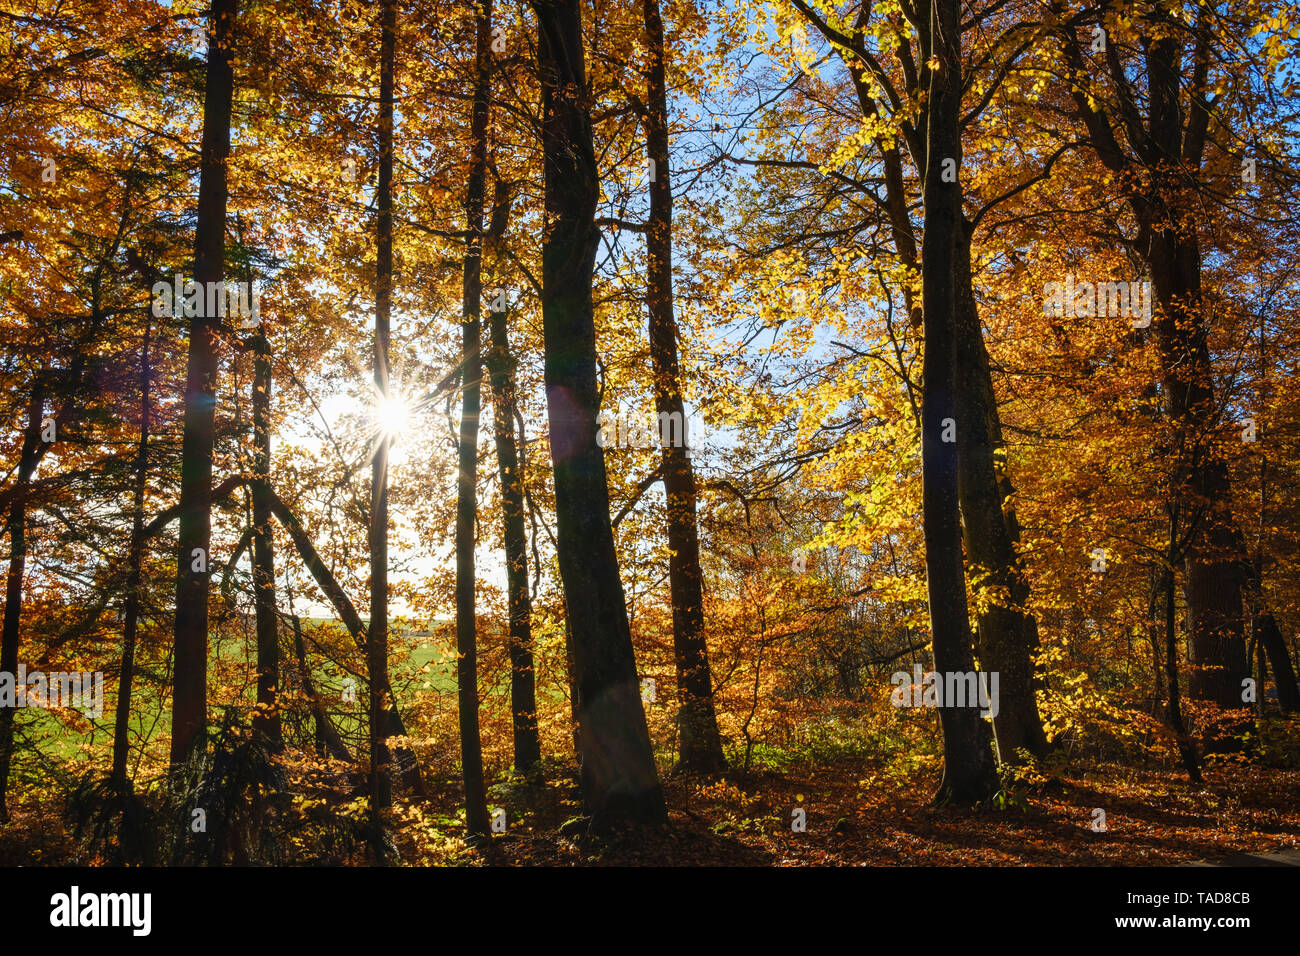 Germany, Bavaria, autumnal beech forest in sunshine near Dietramszell Stock Photo